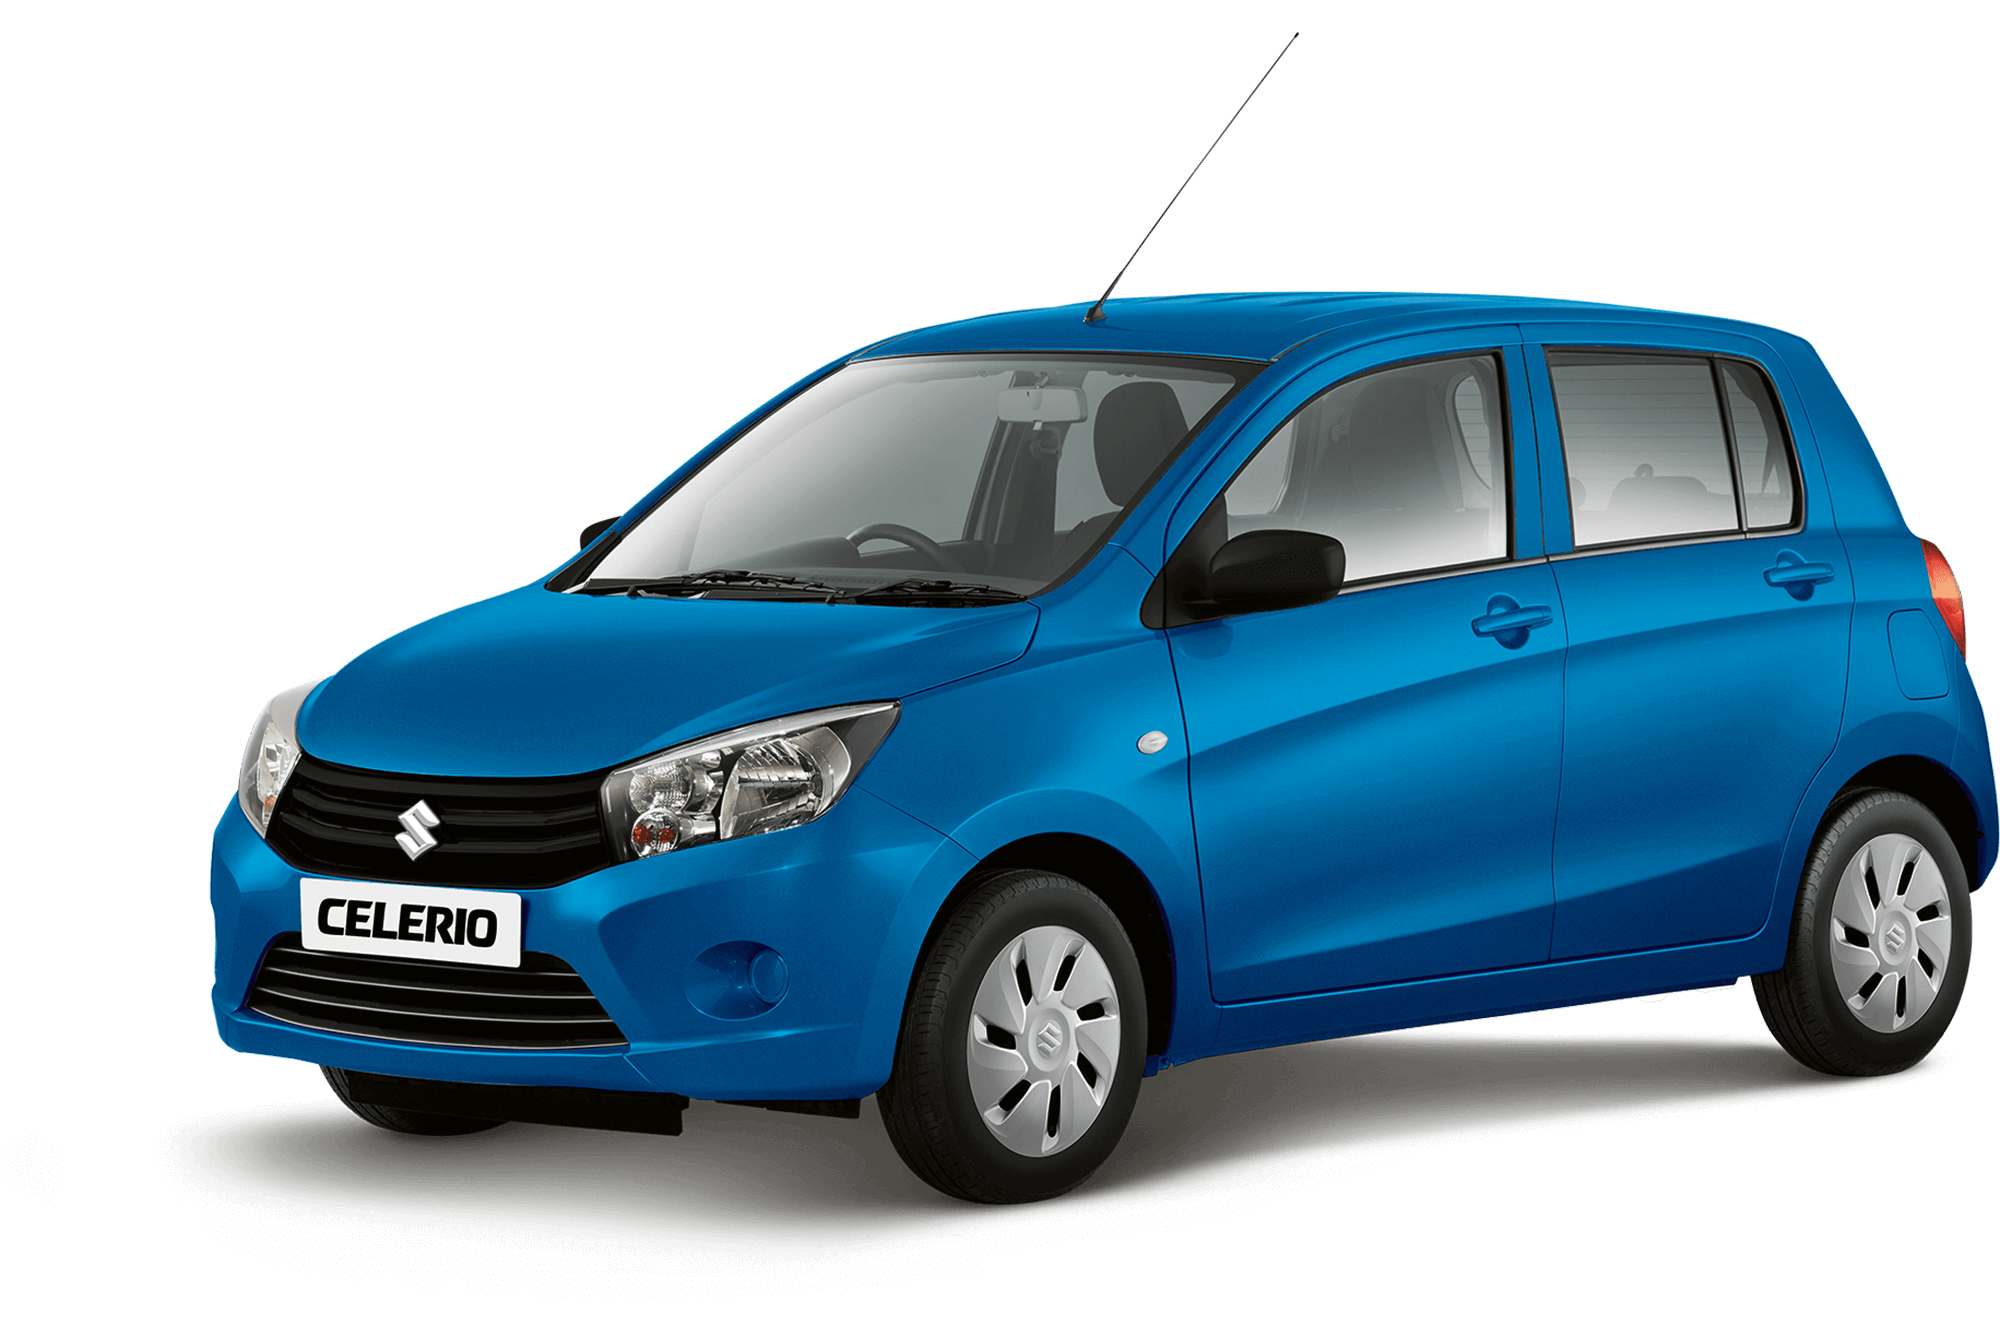 suzuki celerio sz2 specs price suzuki cars uk. Black Bedroom Furniture Sets. Home Design Ideas